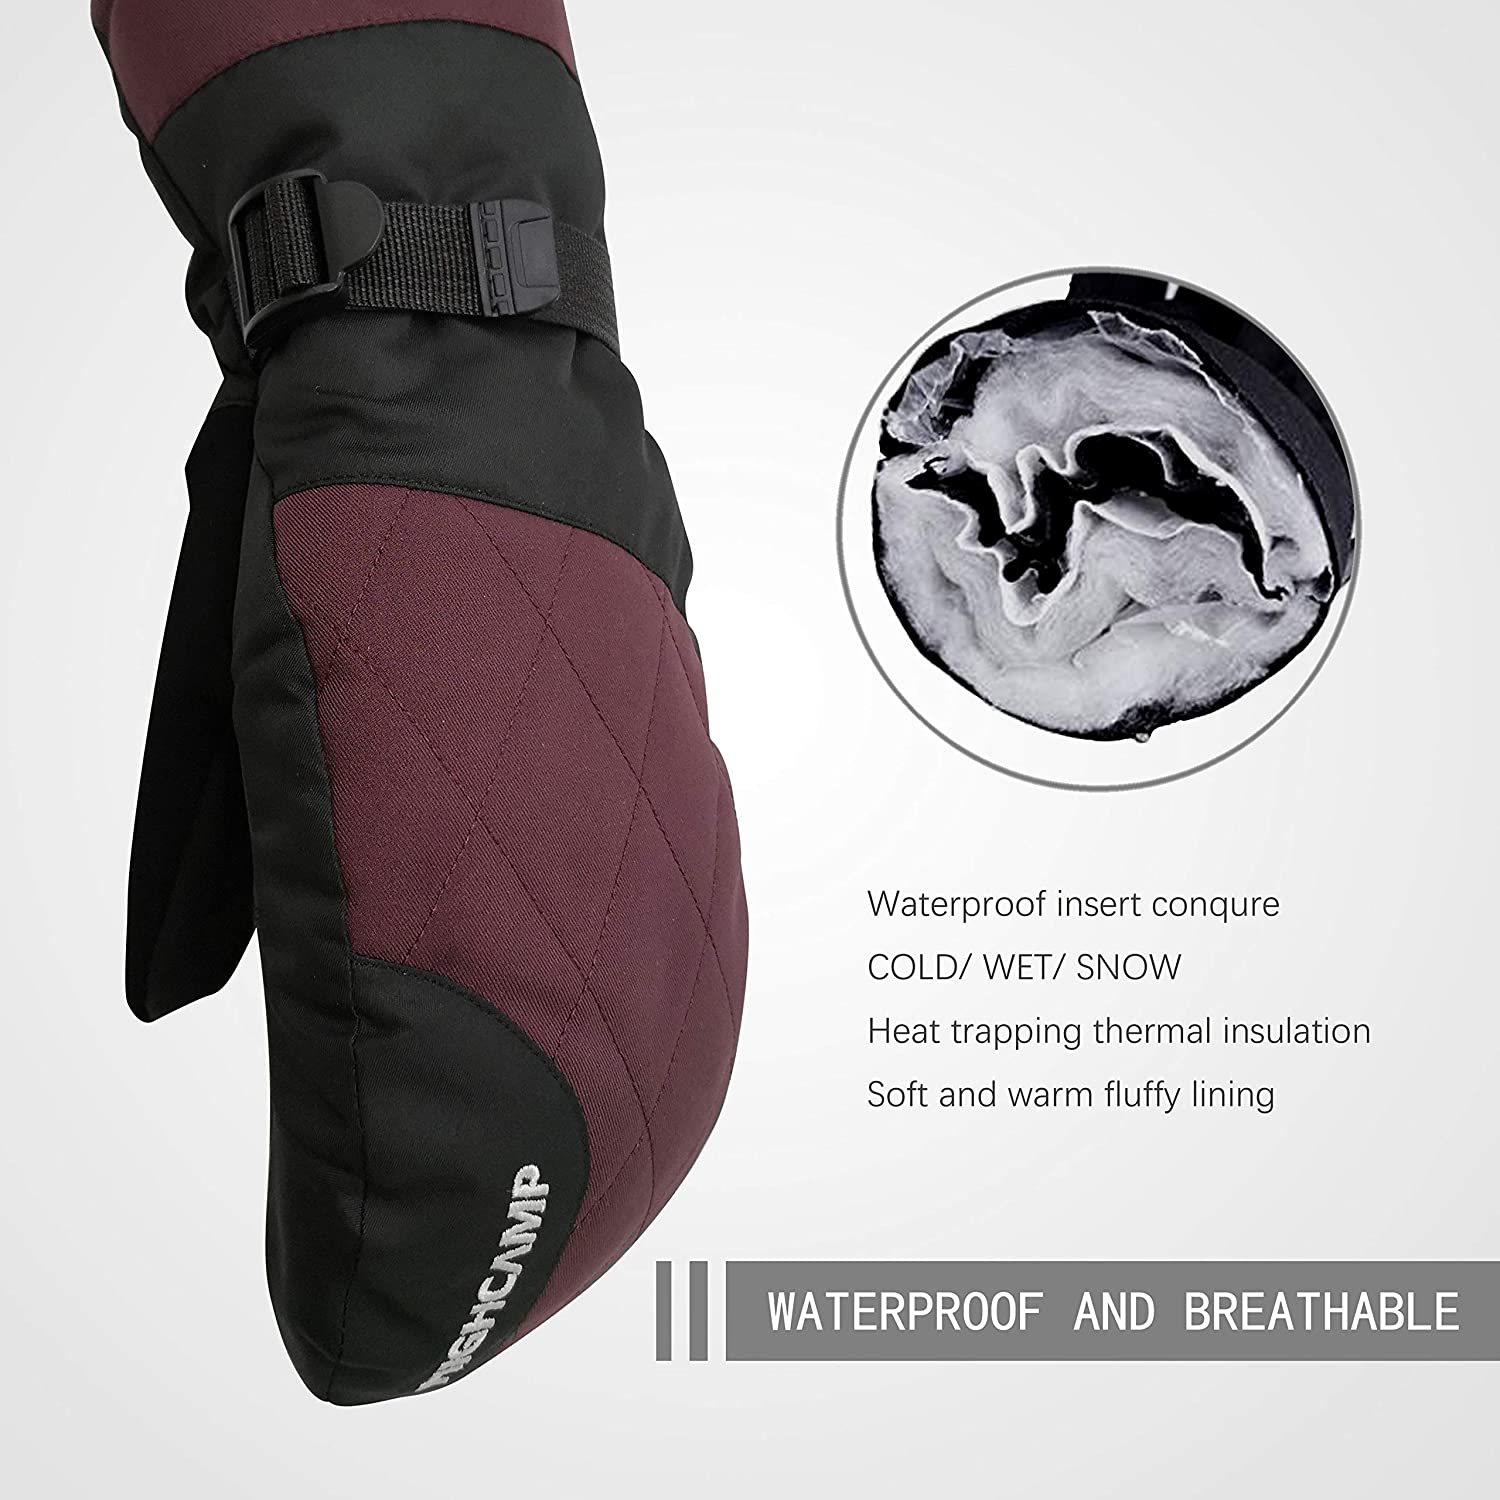 Skiing Highcamp Winter Ski Snow Mittens for Men Warm Waterproof Gloves with Drawstring for Cold Weather Snowboarding Shoveling /& More Outdoor Sports